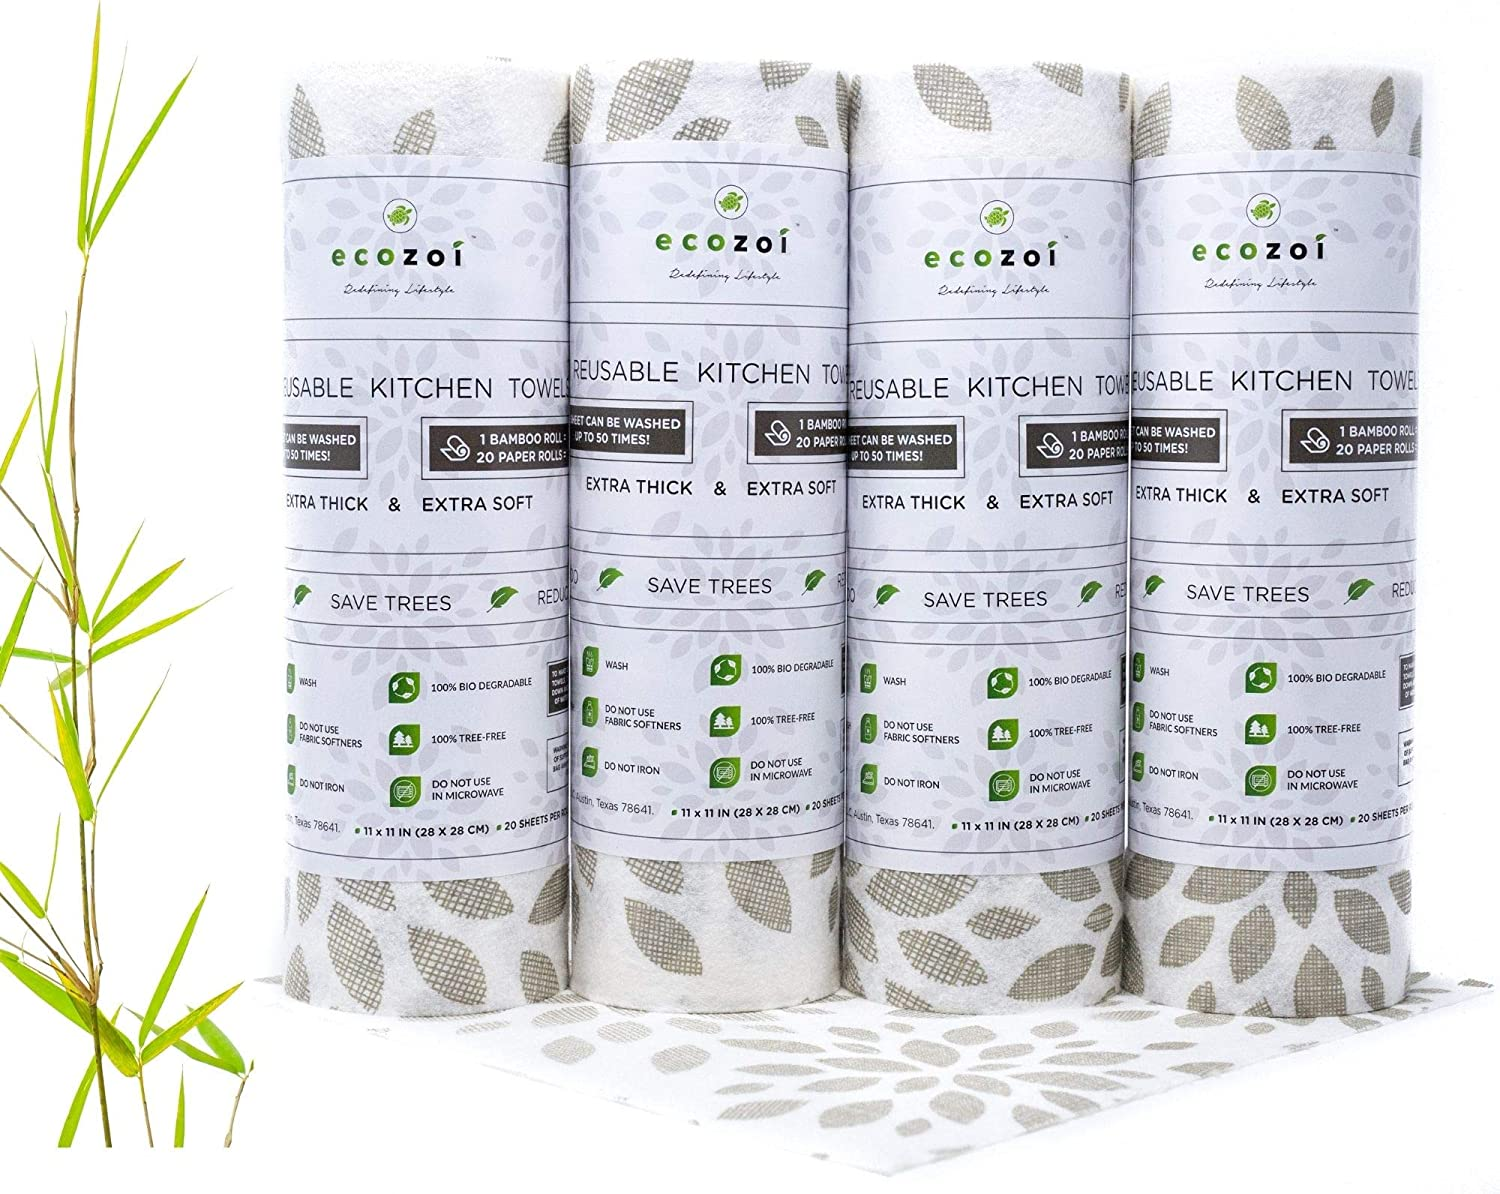 Ecozoi Extra Thick Eco-Friendly Zero Waste BambooKitchen Paper Towels, Heavy Duty Reusable, Washable, Biodegradable Unpaper Towels - 4 Pack